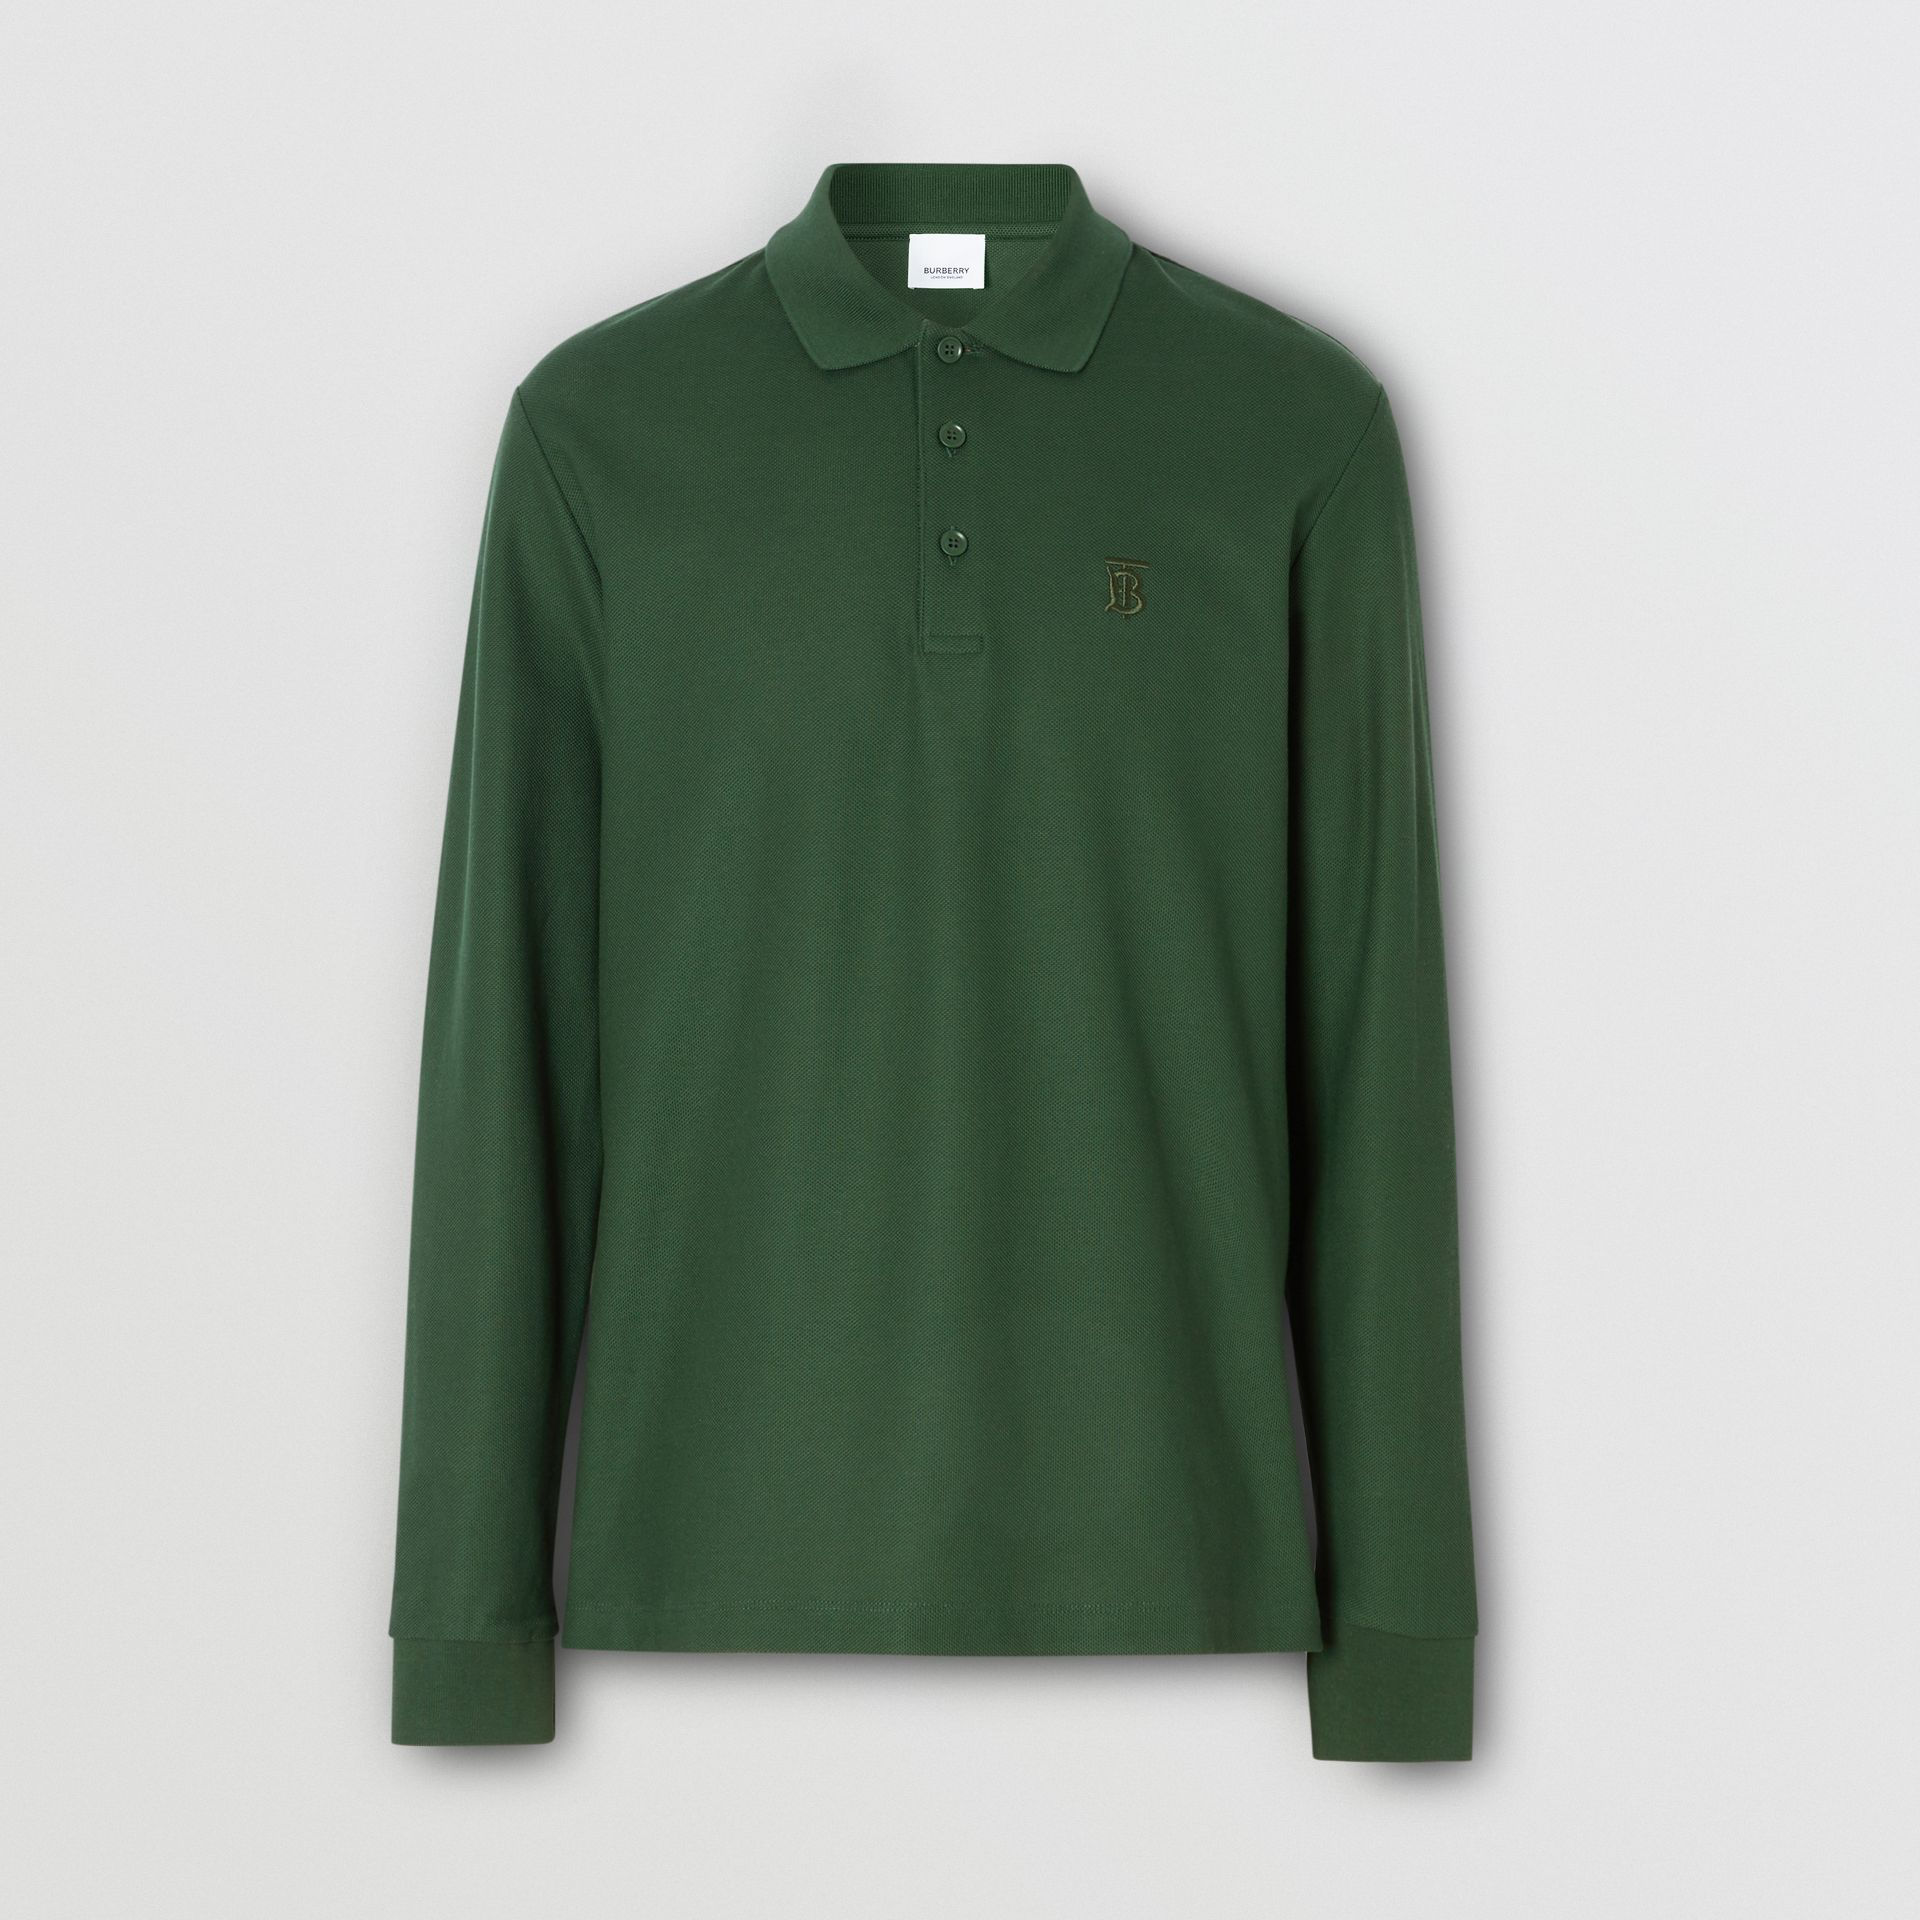 Long-sleeve Monogram Motif Cotton Piqué Polo Shirt in Dark Pine Green - Men | Burberry Canada - gallery image 3